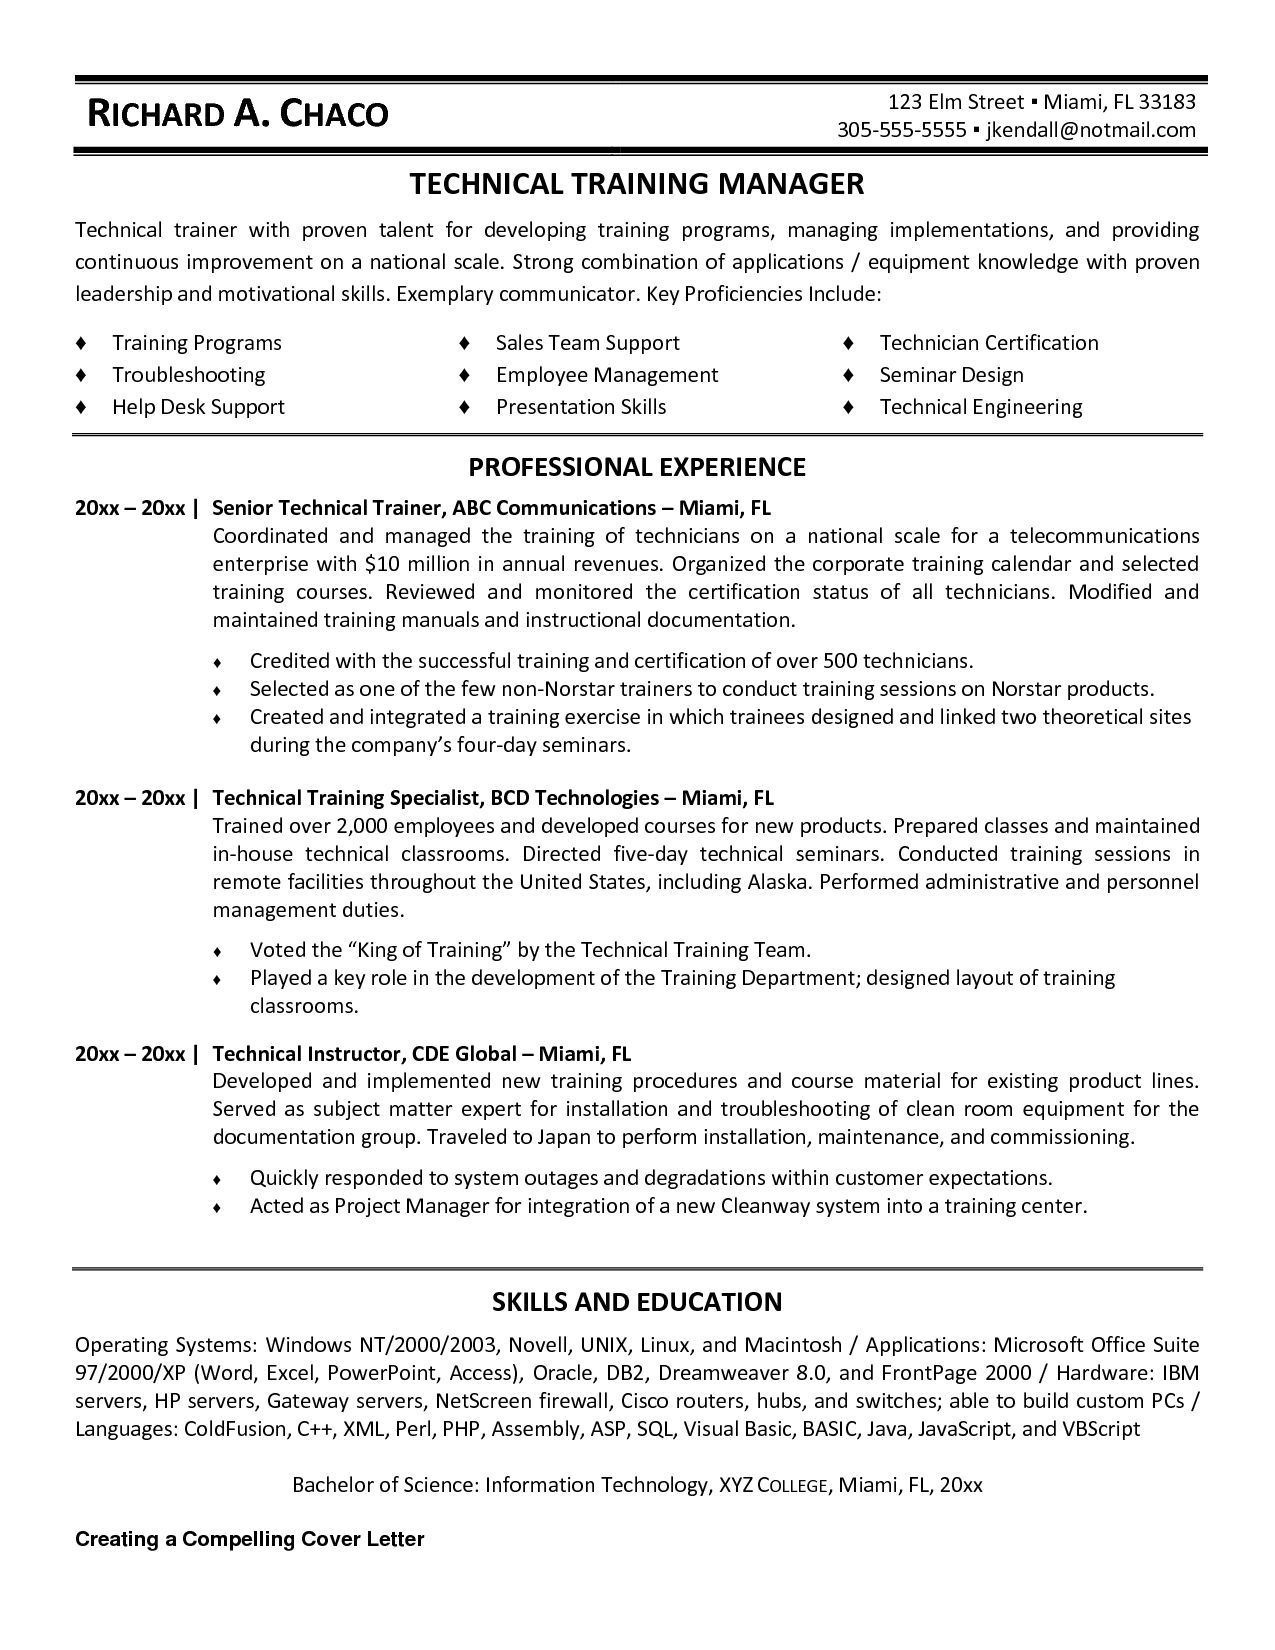 personal trainer resume objective personal trainer resume sample gallery photos - Personal Trainer Resume